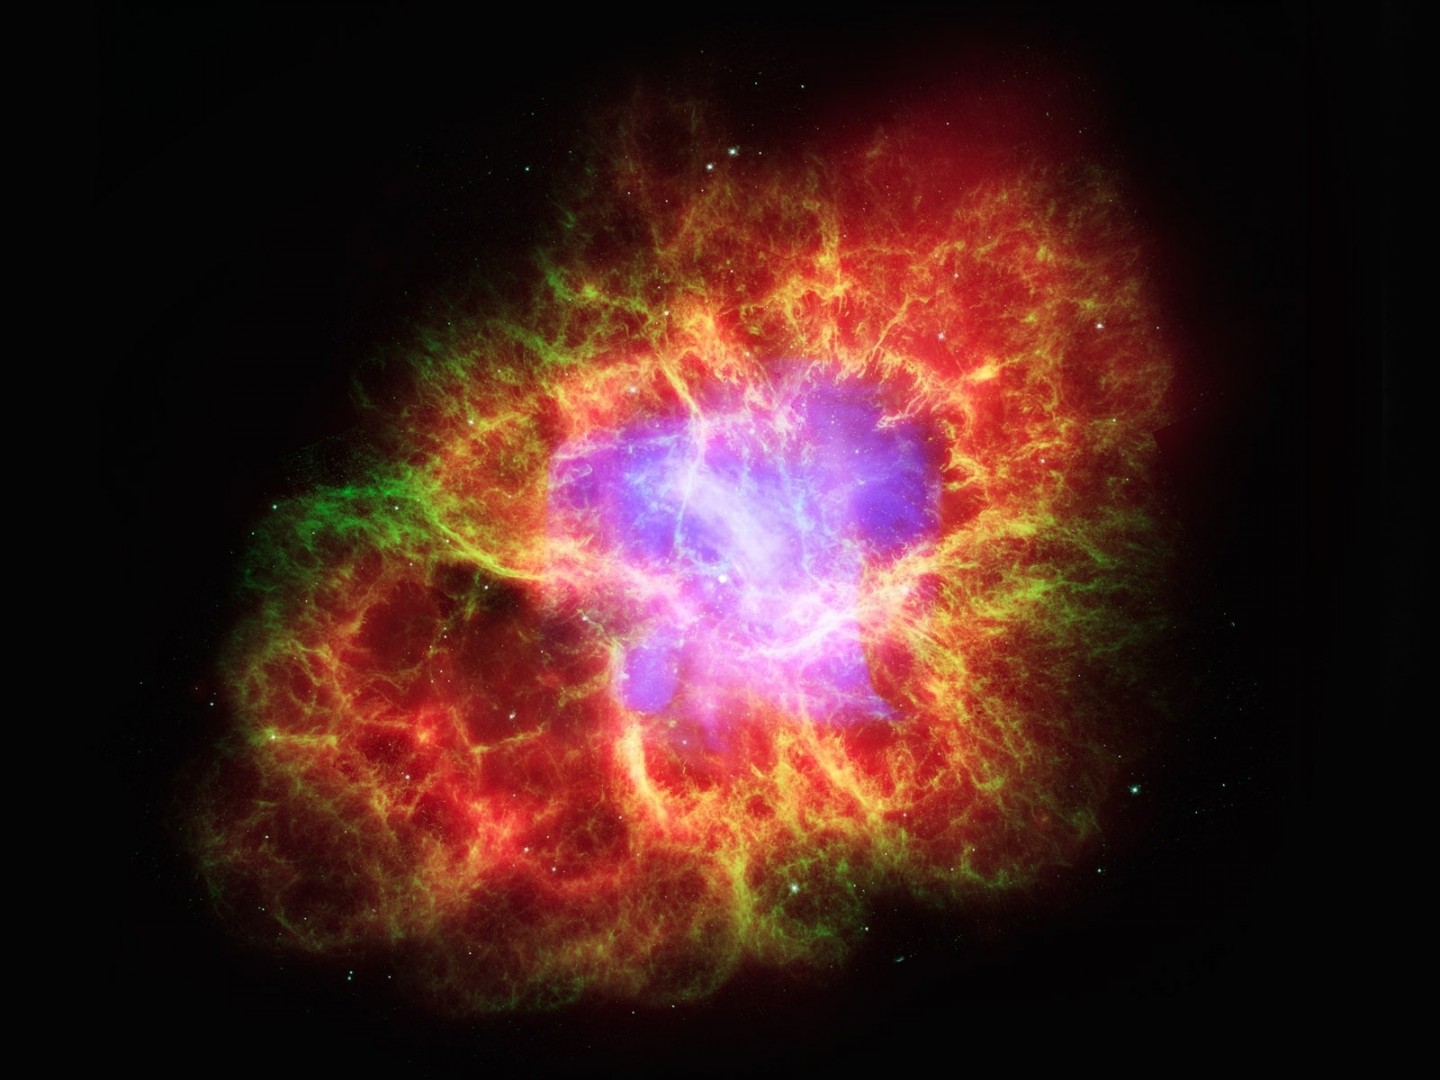 Crab Nebula Supernova 3993 Hd Wallpapers in Space   Imagescicom 1440x1080